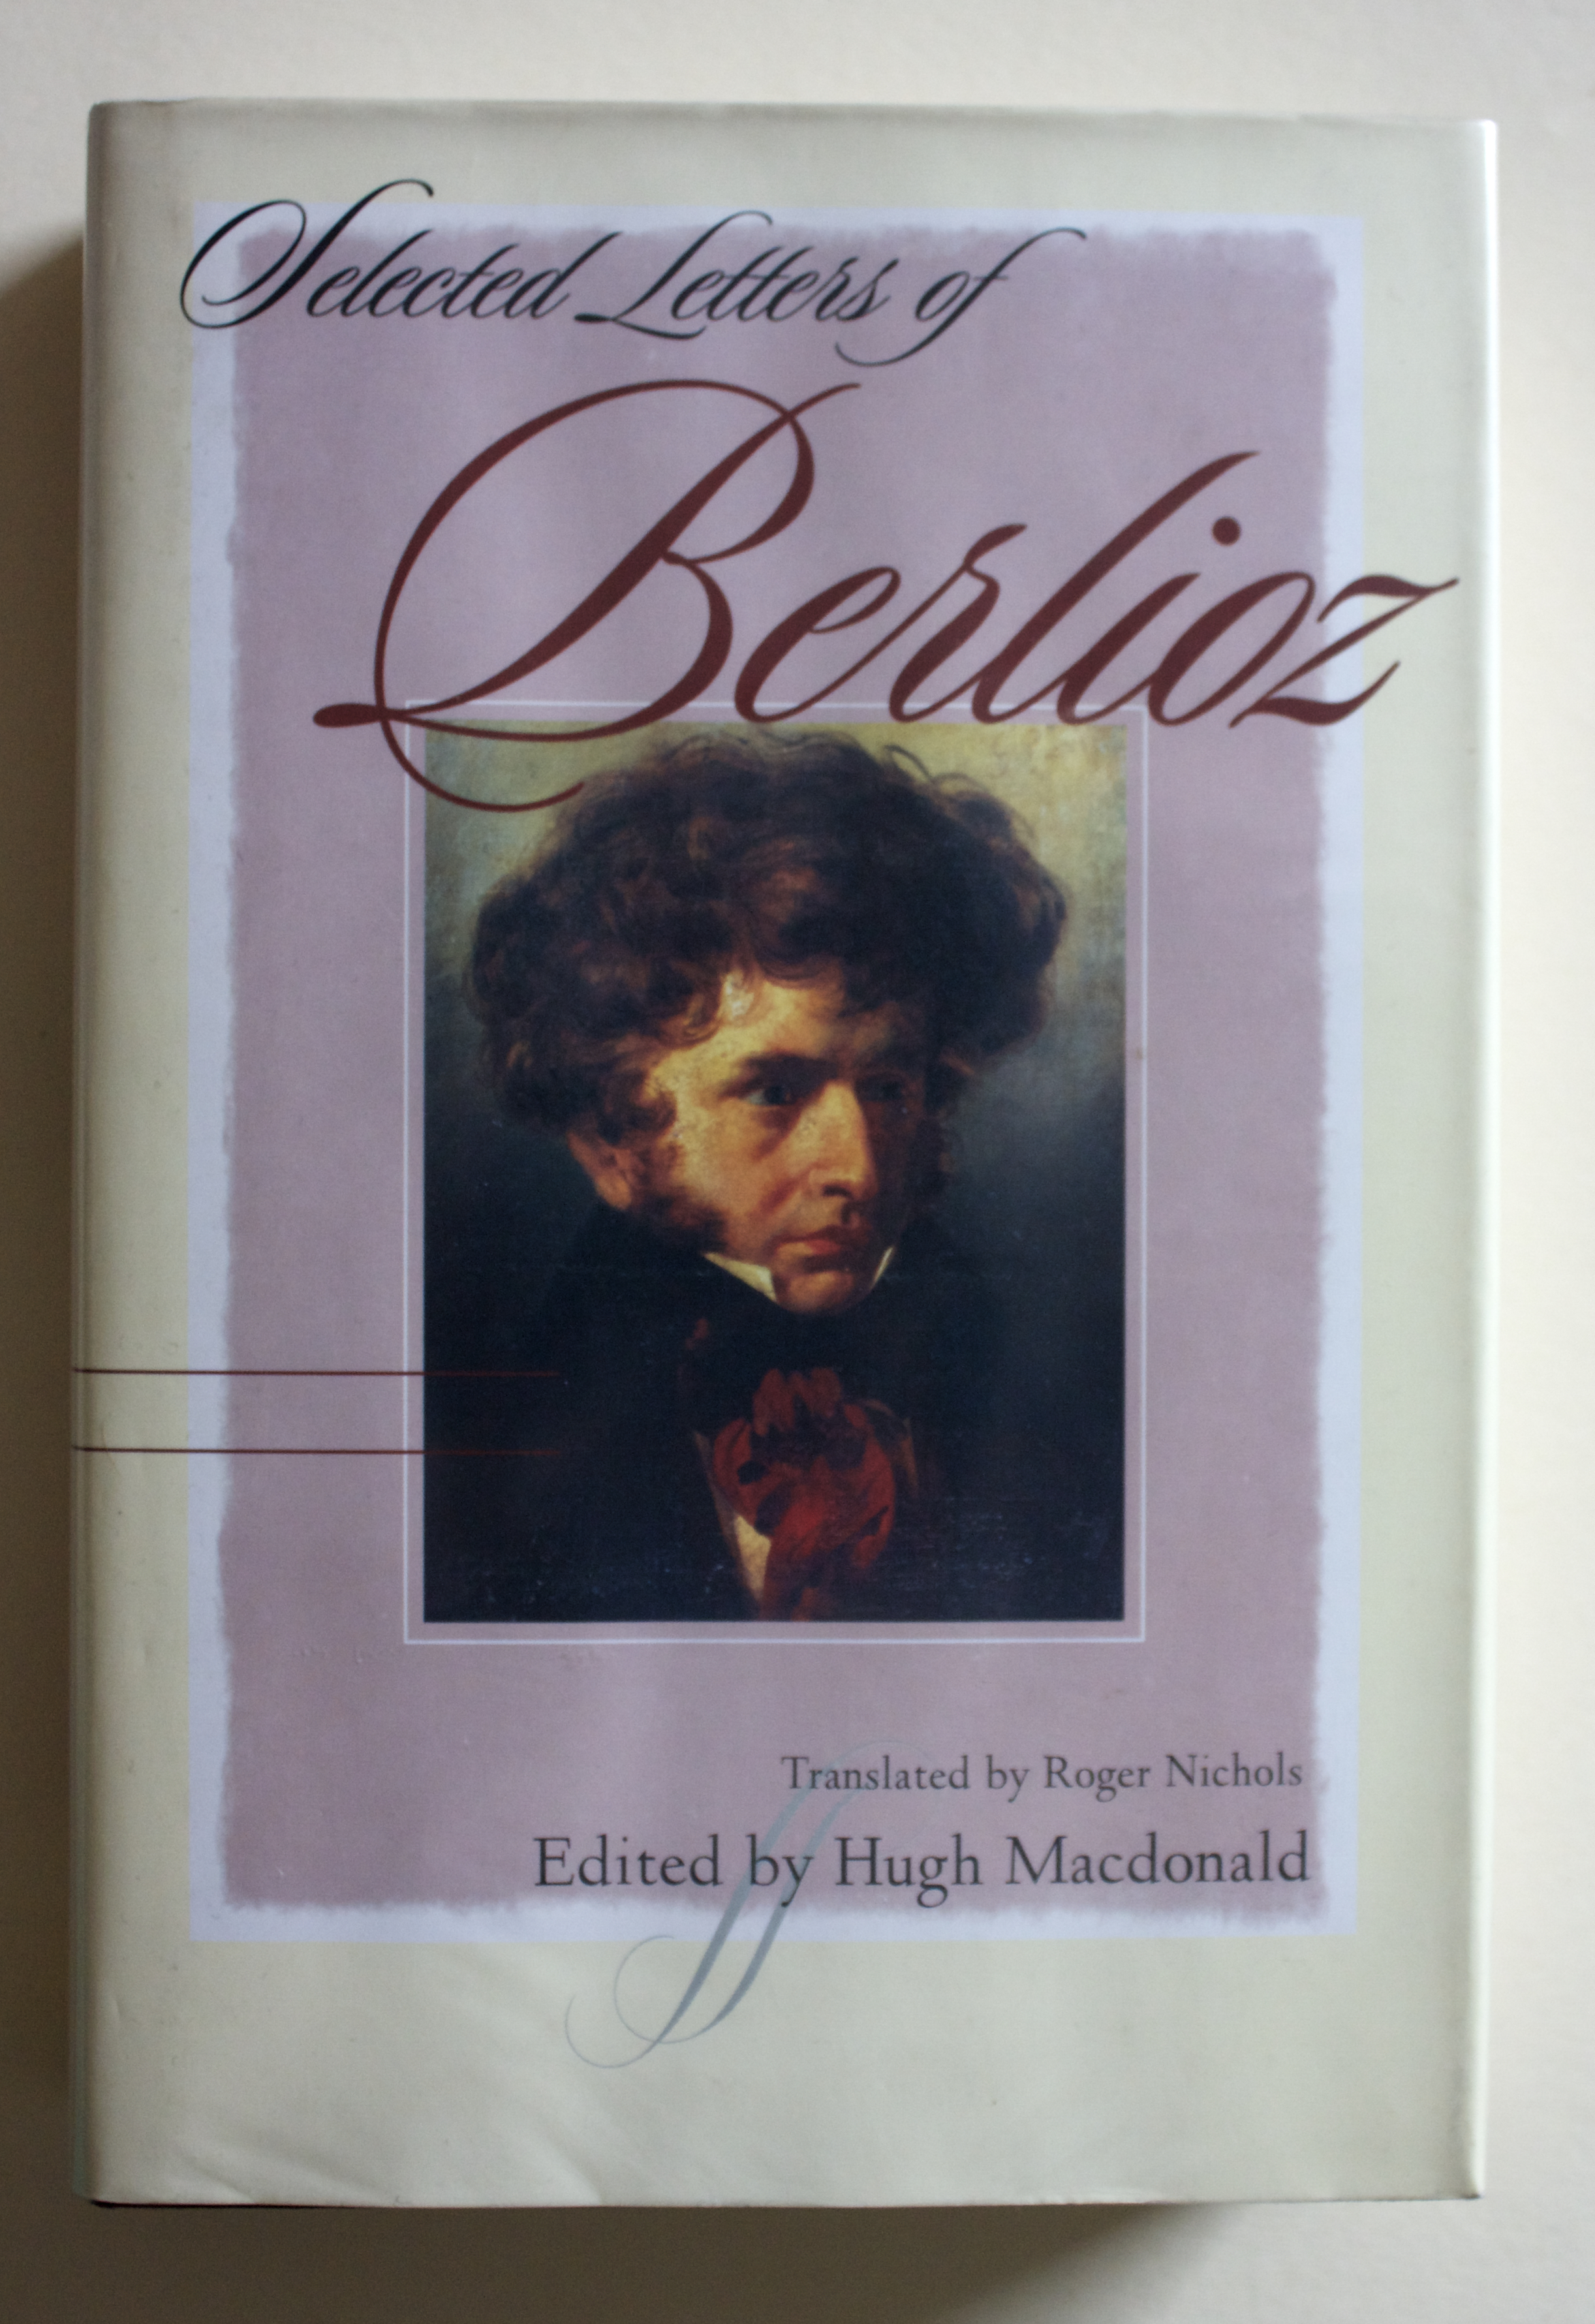 "Copy of ""Selected Letters of Hector Berlioz"" edited by Hugh Macdonald, translated by Roger Nicols (W. W. Norton, 1995)"